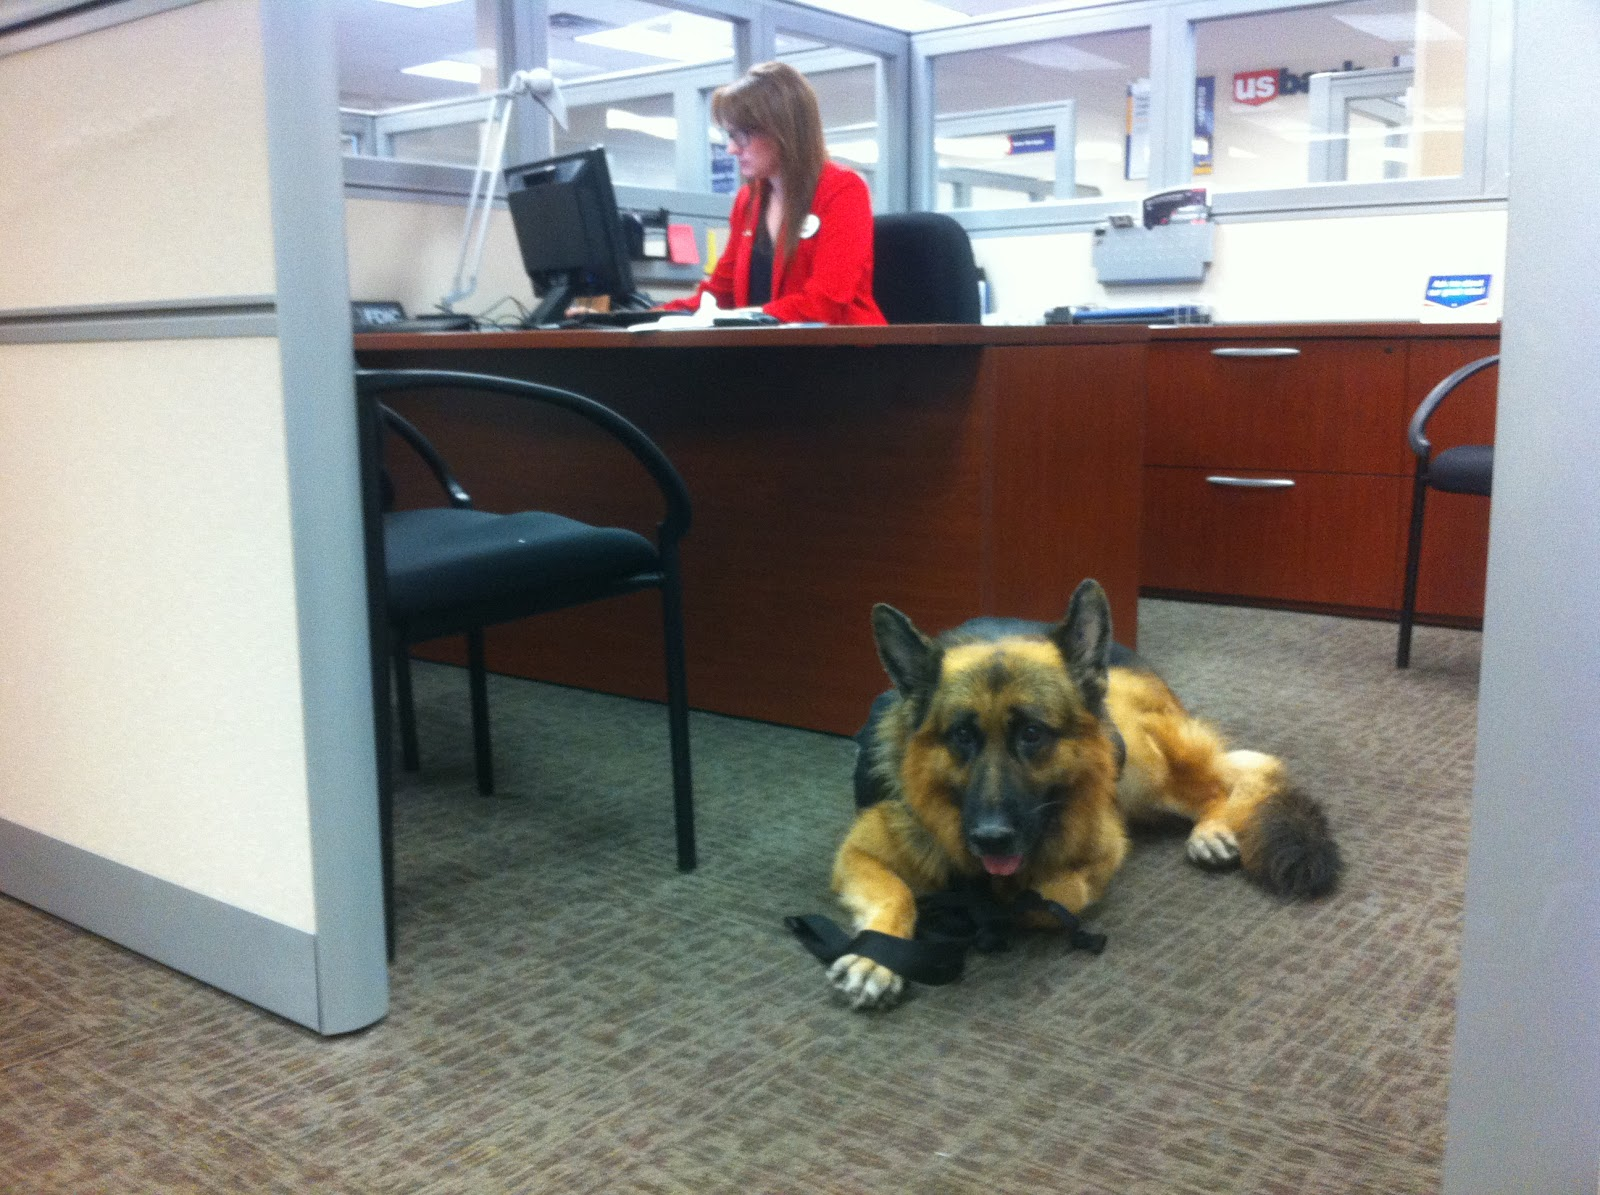 motivating staff in your small business by allowing employees to take pets to the office